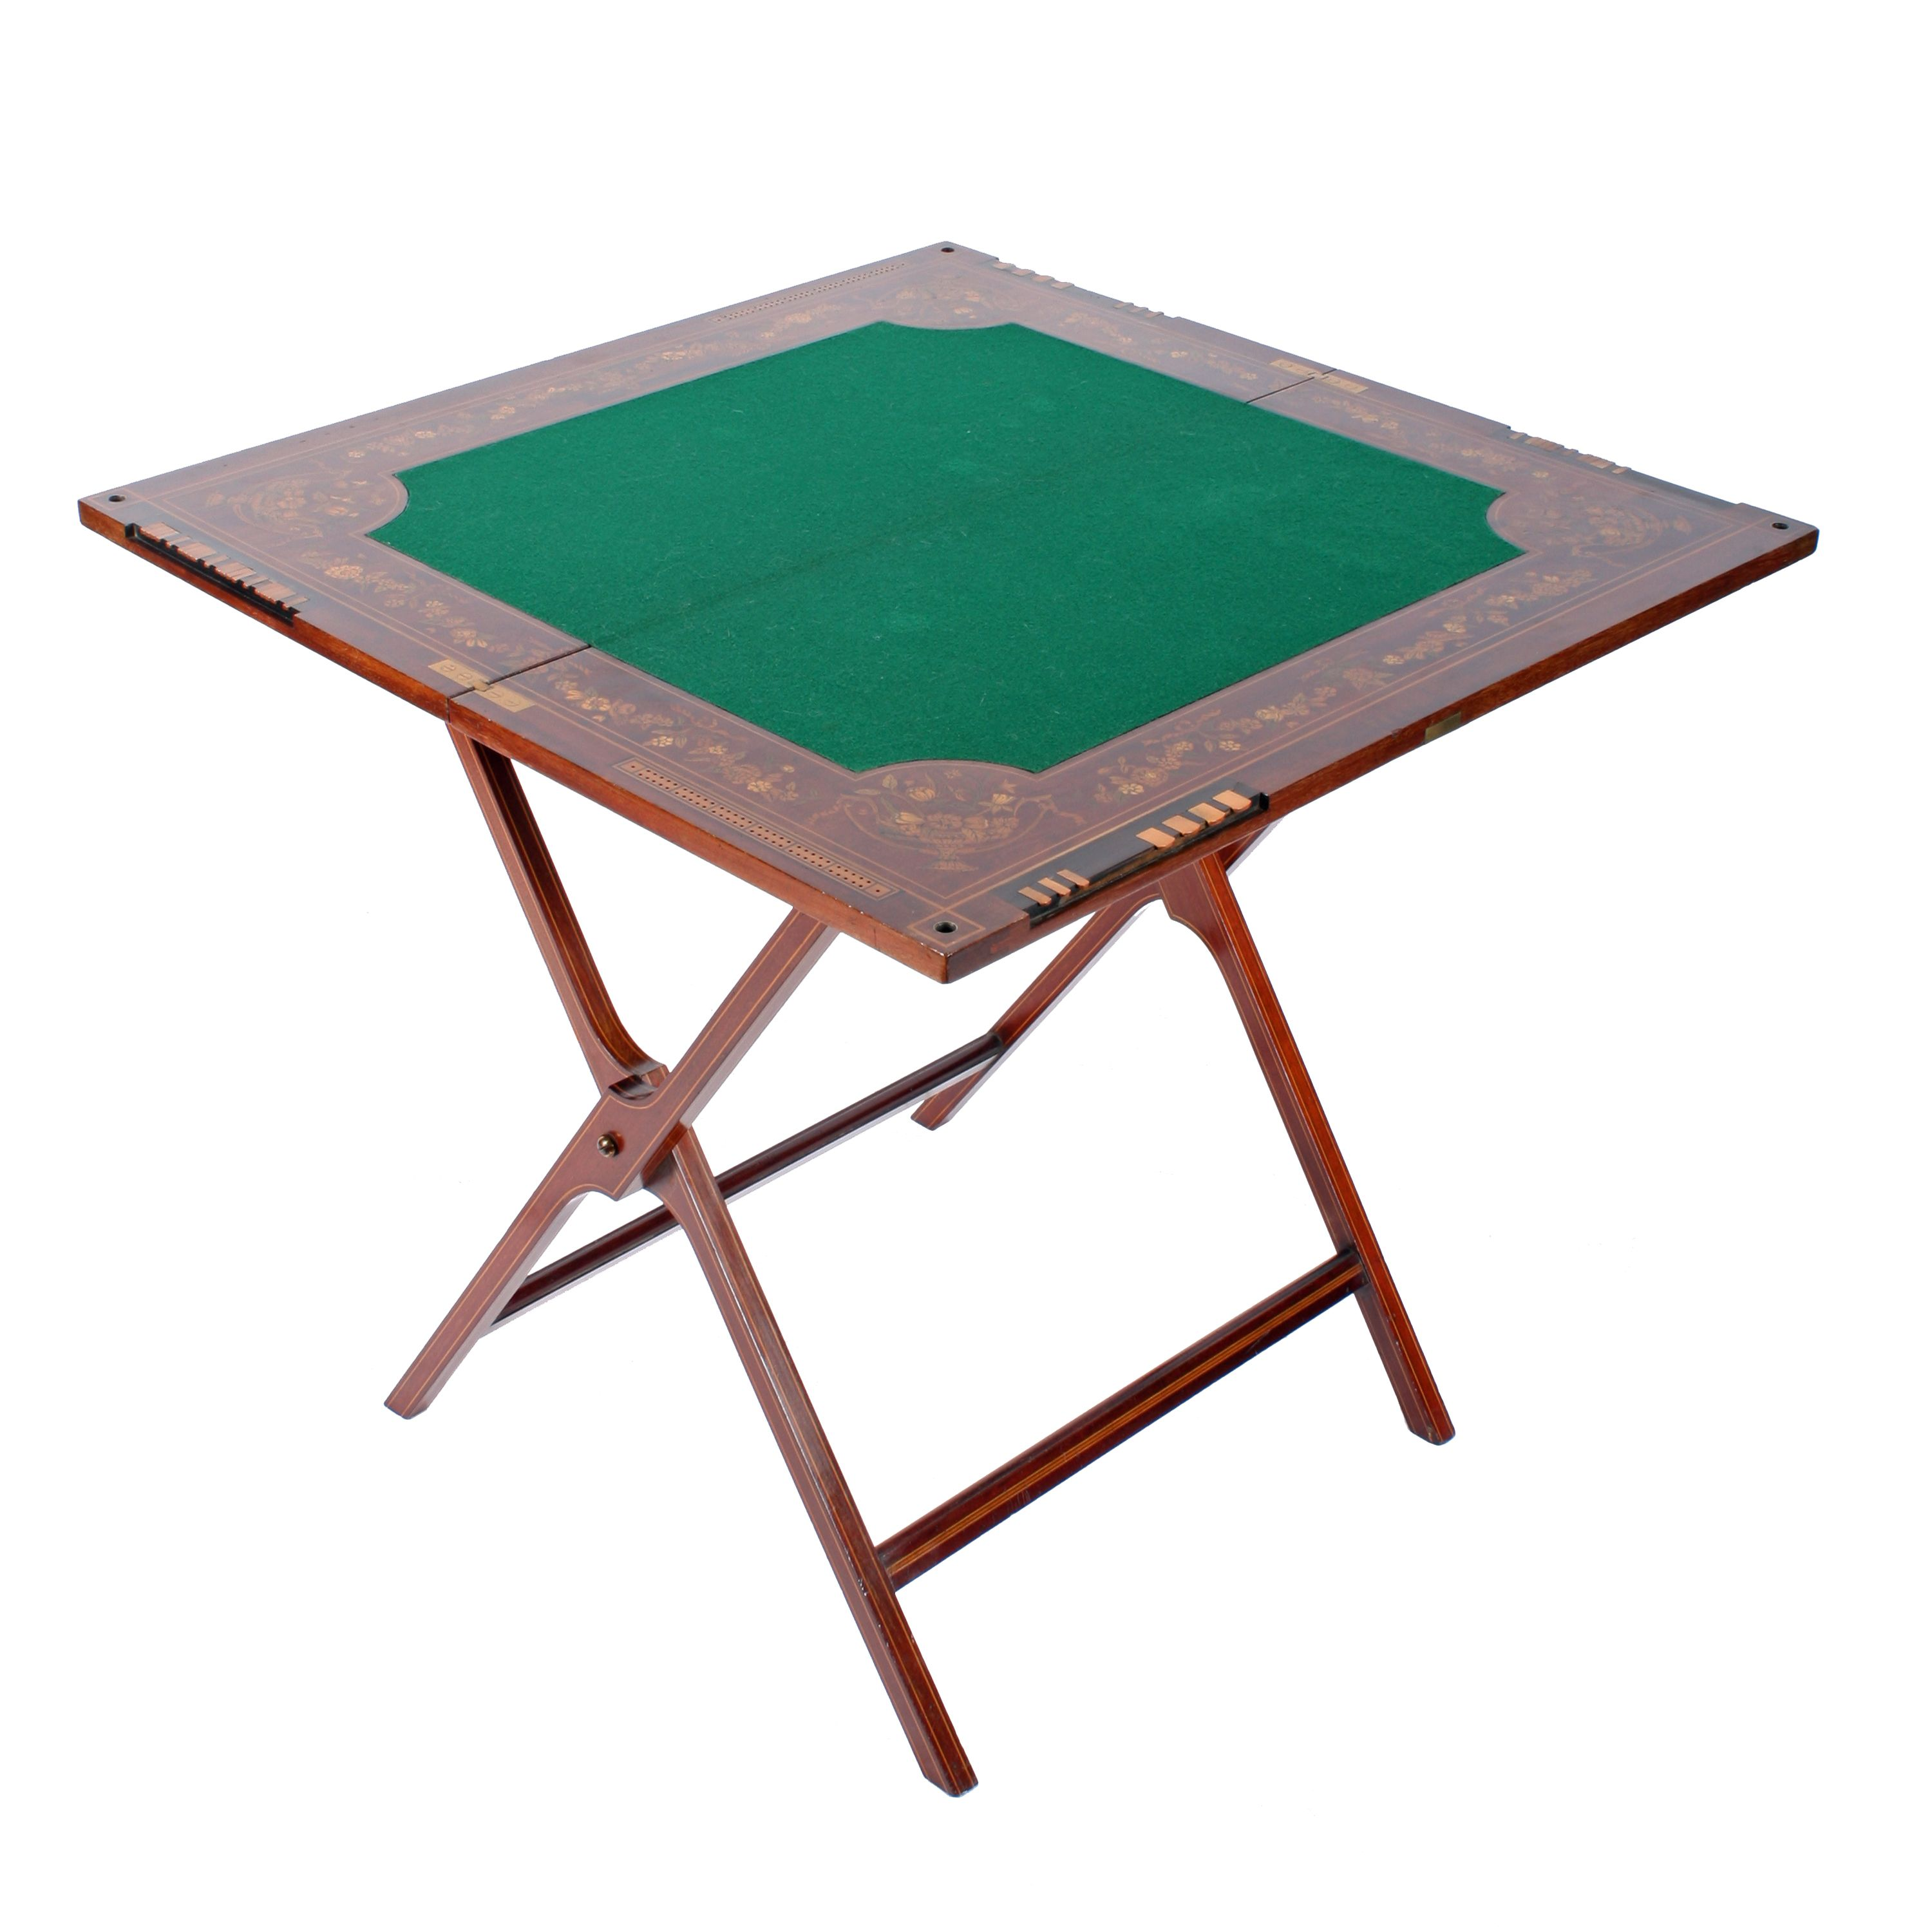 Victorian Folding Card Table Antique Table Table Cards Table Games